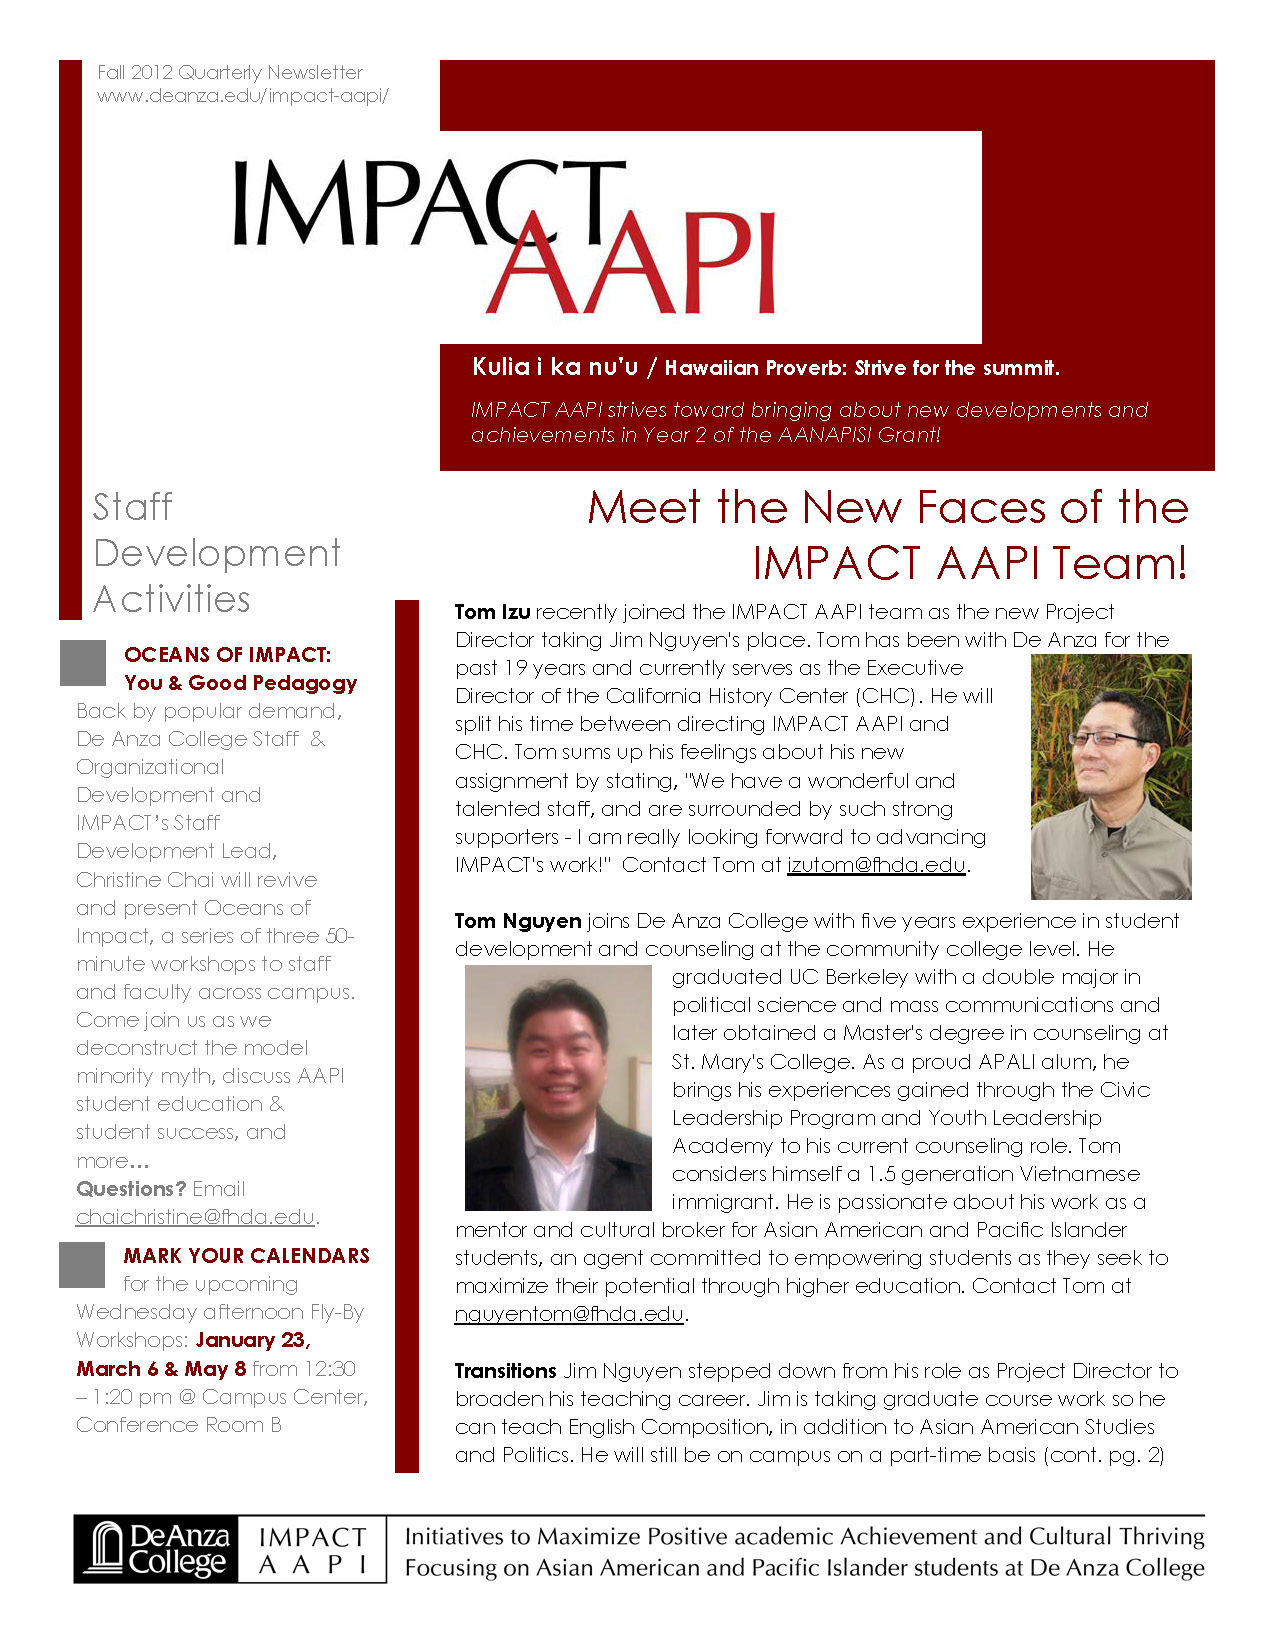 Fall '12 IMPACT AAPI Newsletter